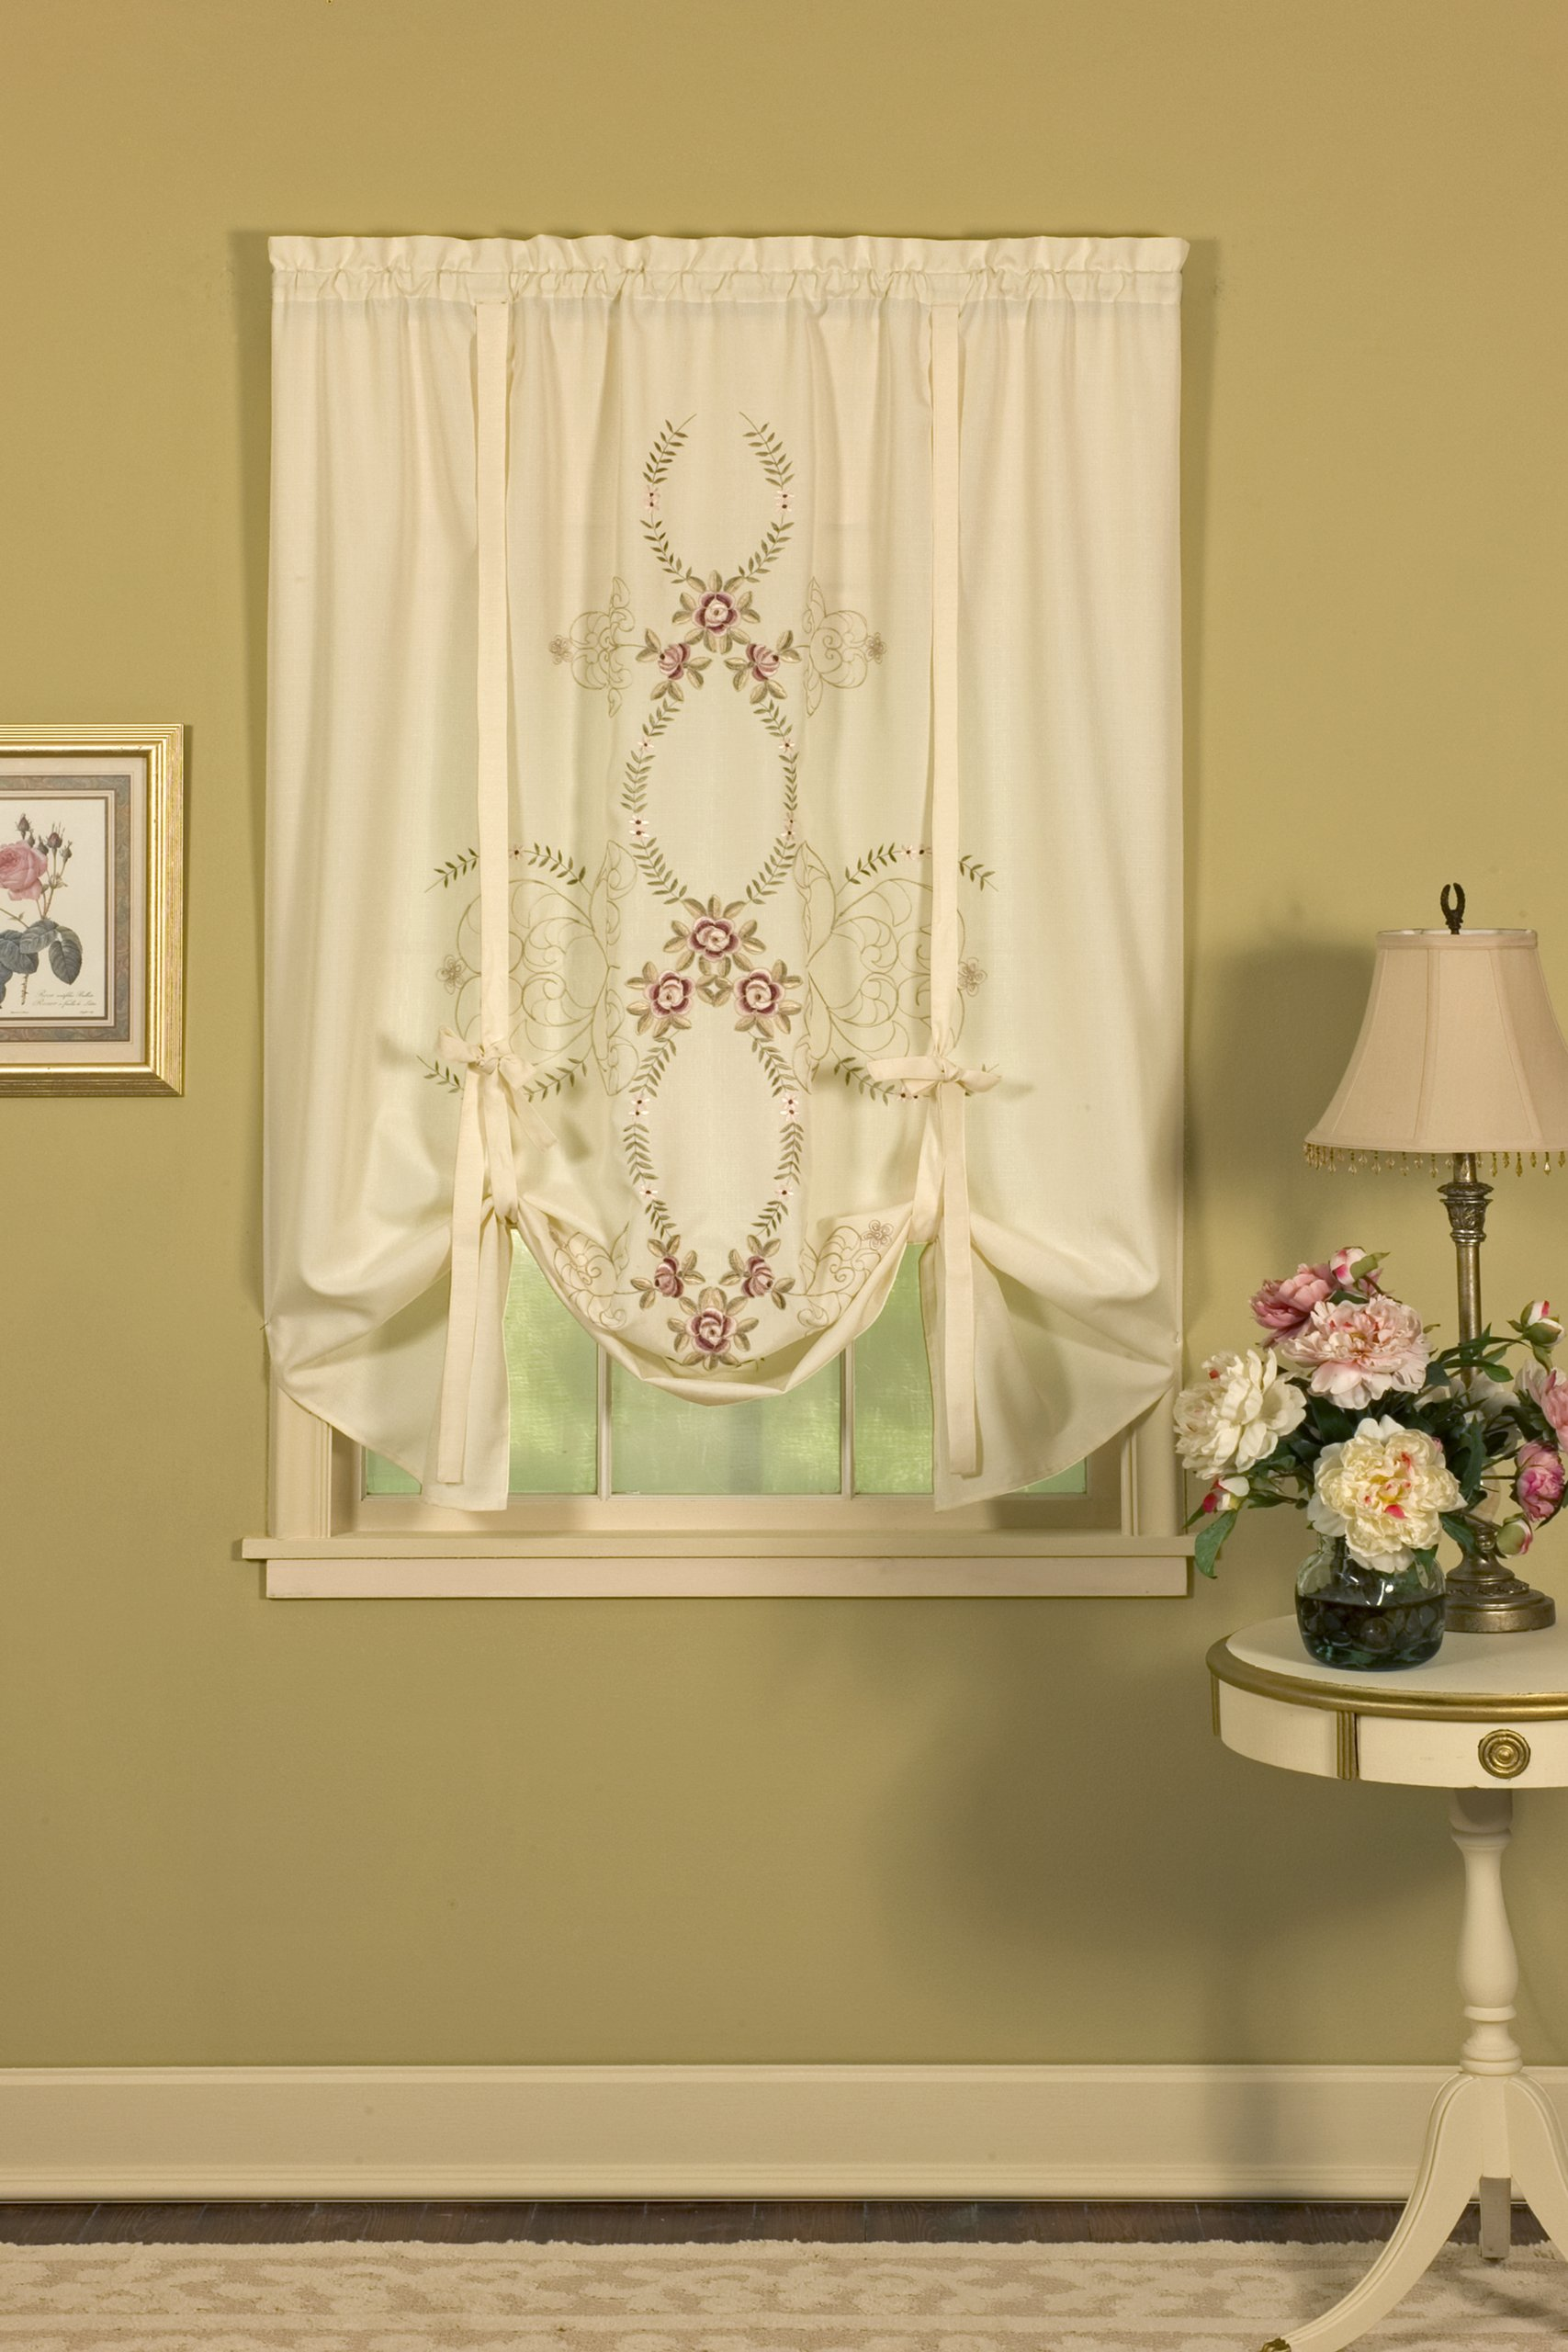 Today's Curtain Verona Reverse Embroidery Tie-Up Window Shade, 63-Inch, Ecru/Rose